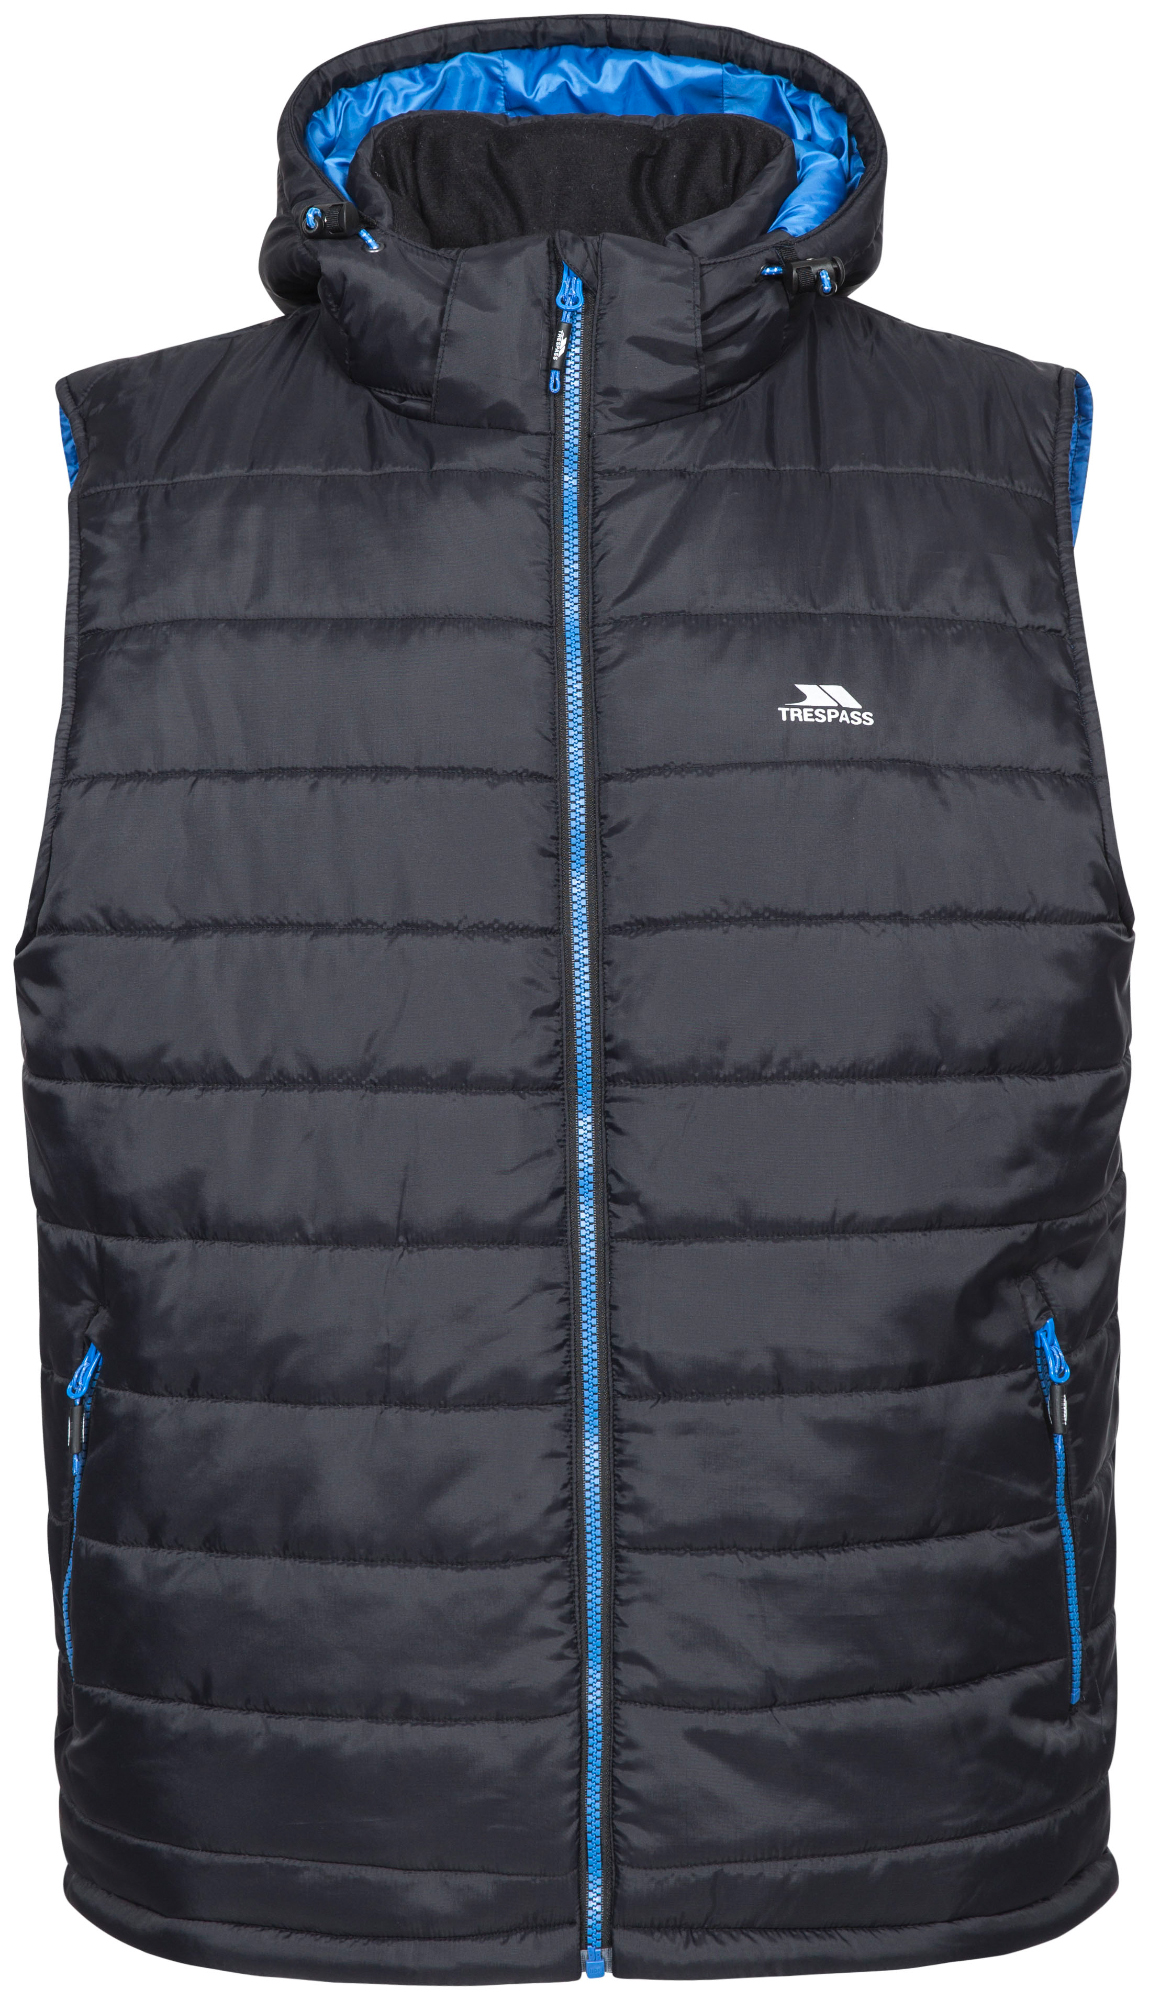 Trespass Franklyn - Polstret Fibervest - Sort | Vests